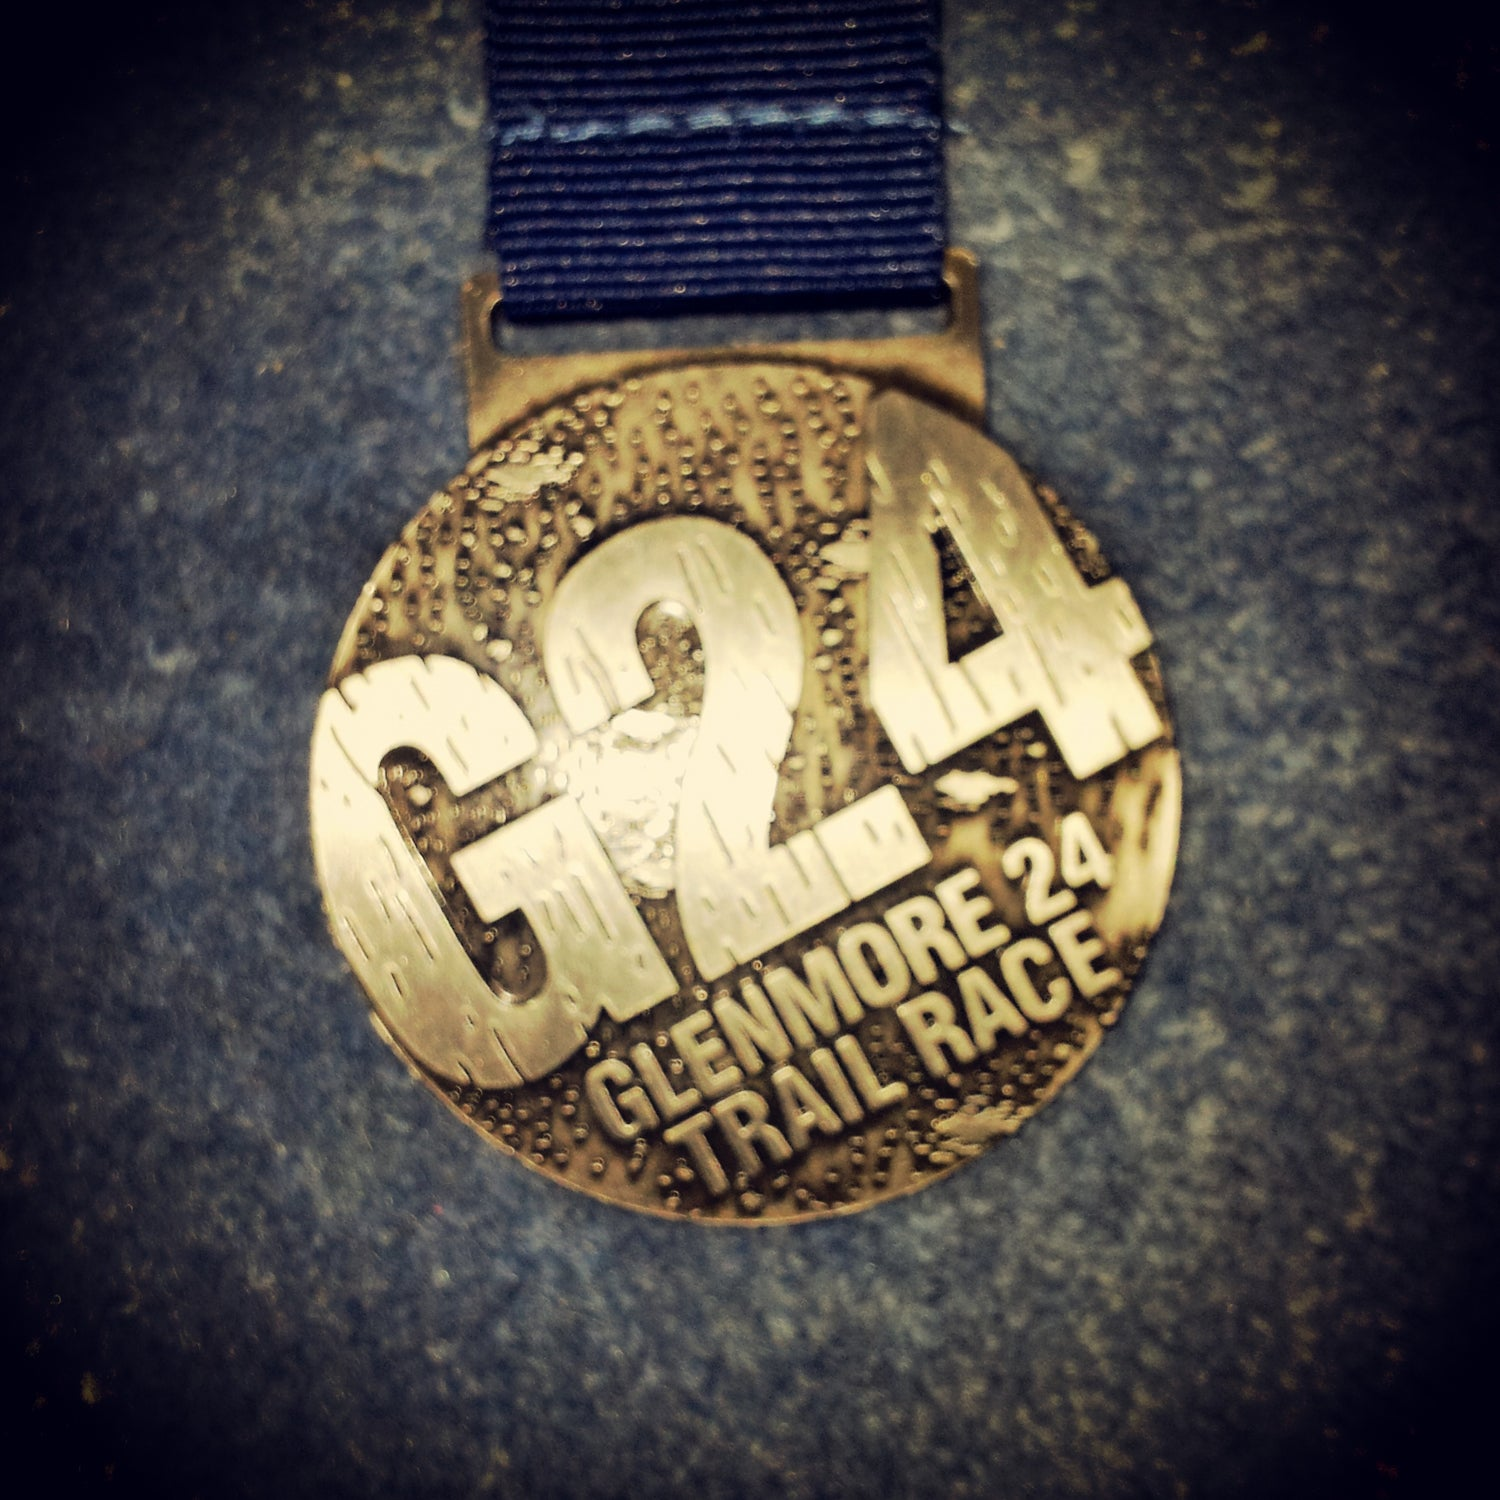 Williams: I took part in the 12-hour race, but again, the simplicity of this medal with the rugged terrain of the trails reminds me of a race that I absolutely loved for the atmosphere. There is a themed party the night before, most of the competitors camp the night before and after, and the volunteers even sing for you at the water station! Although this is the race that broke me, I still love it—and the medal.